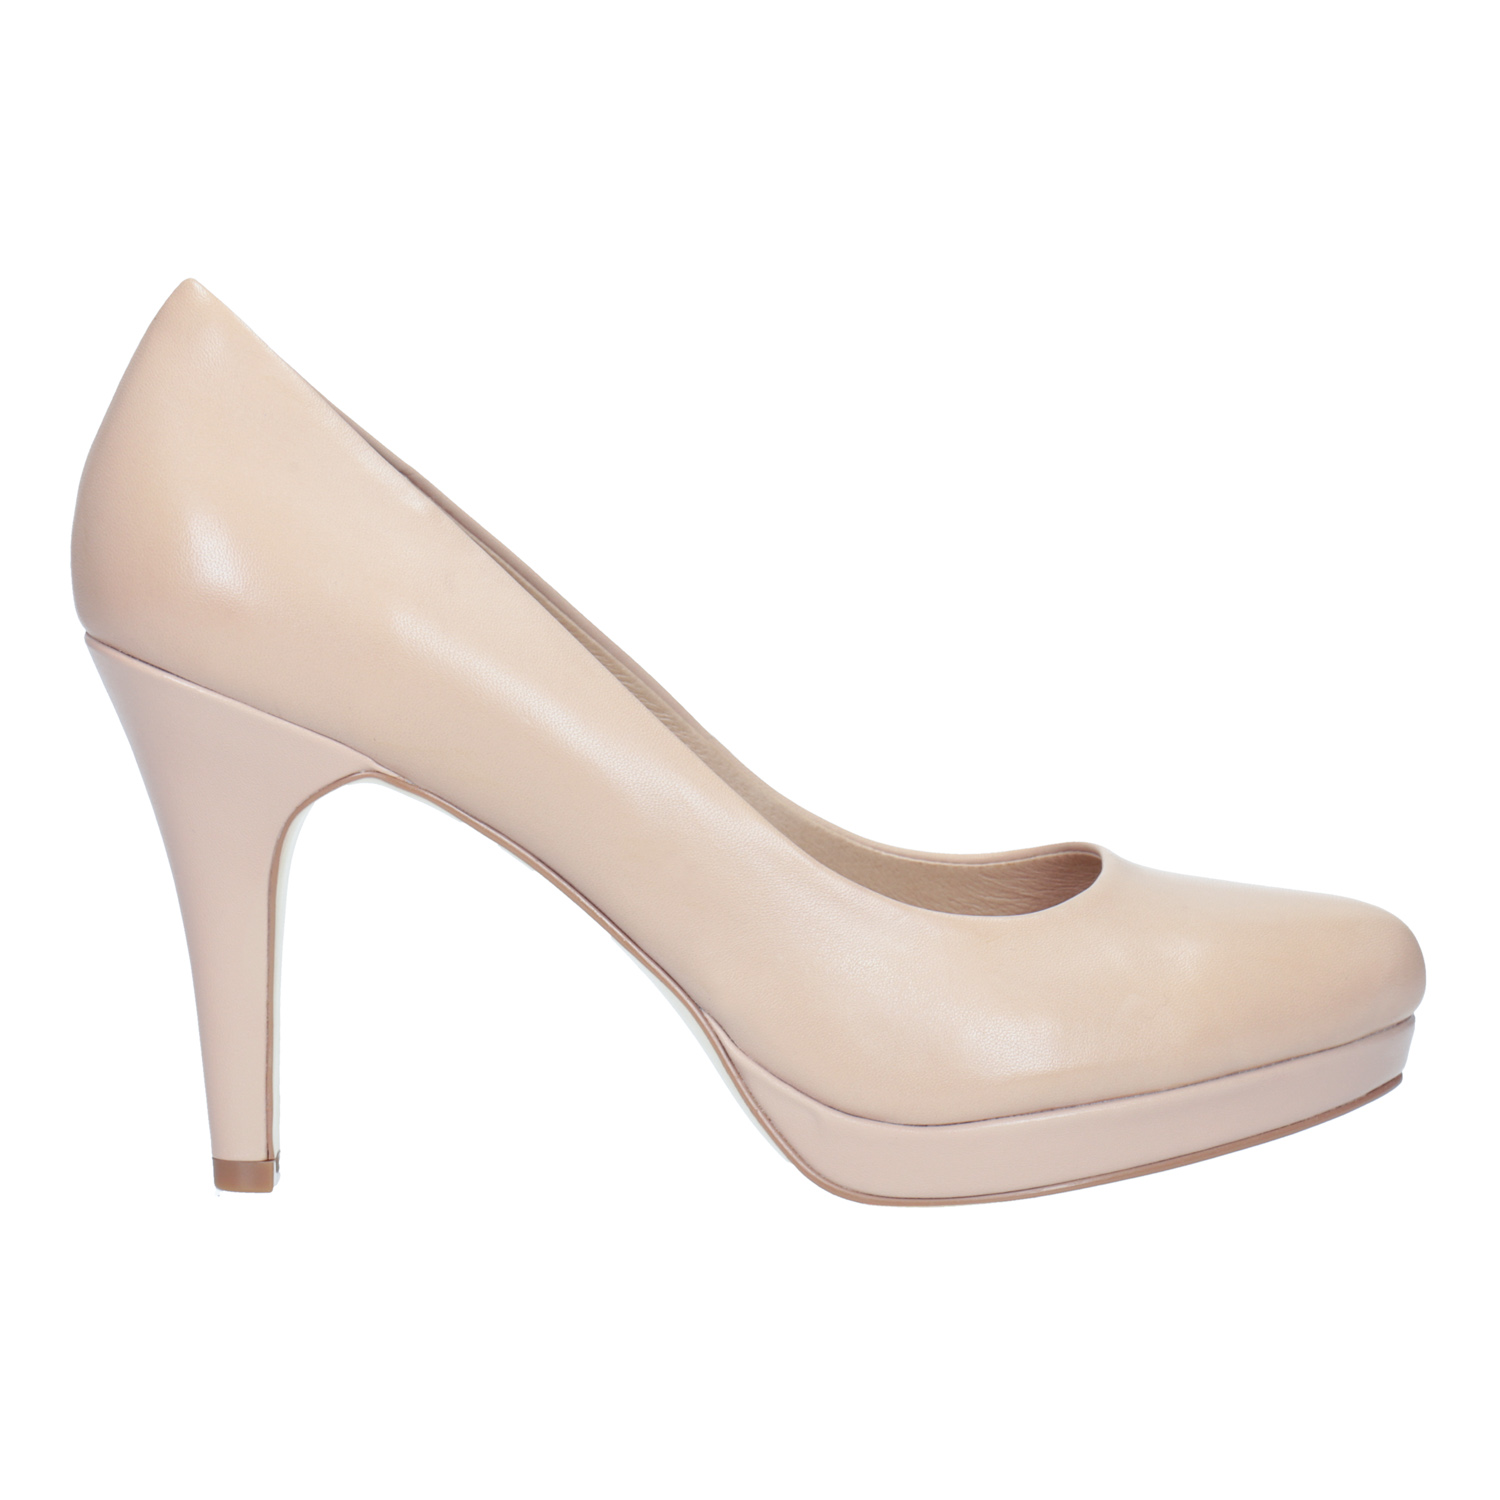 9b641697b991 Insolia Pinkish cream-colored leather pumps - All Shoes